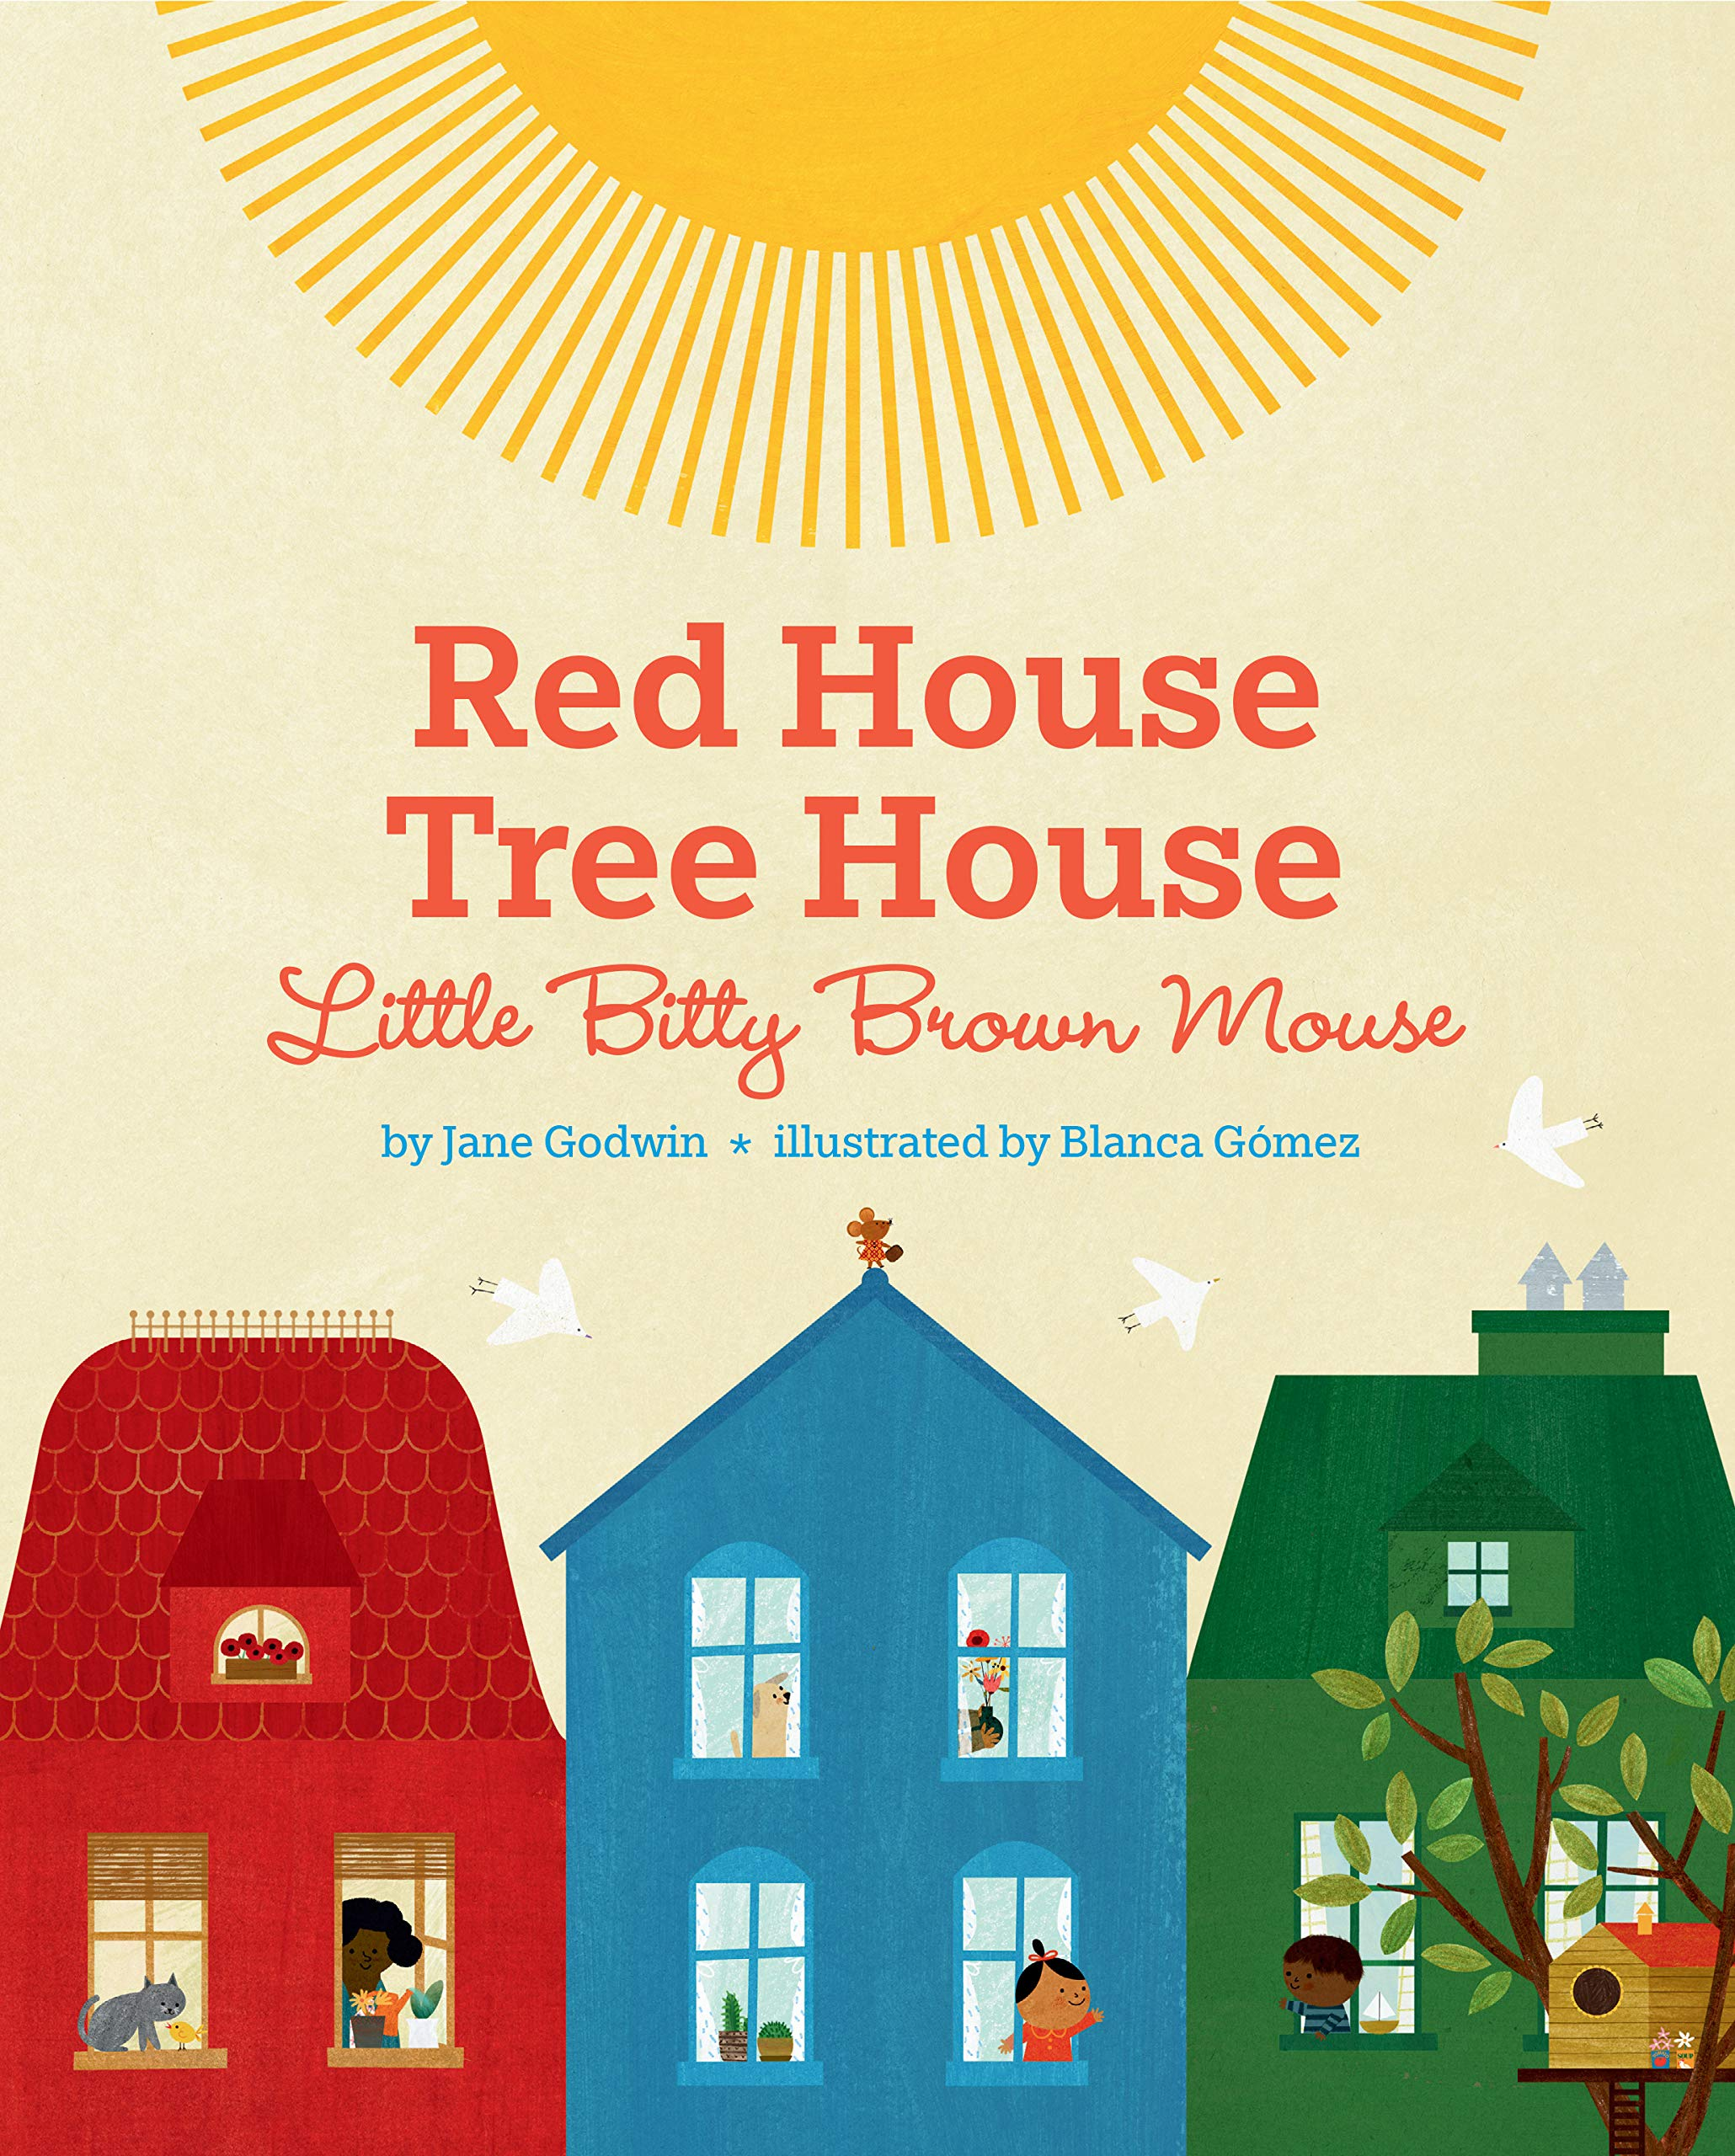 Red House Tree House Little Bitty Brown Mouse book cover